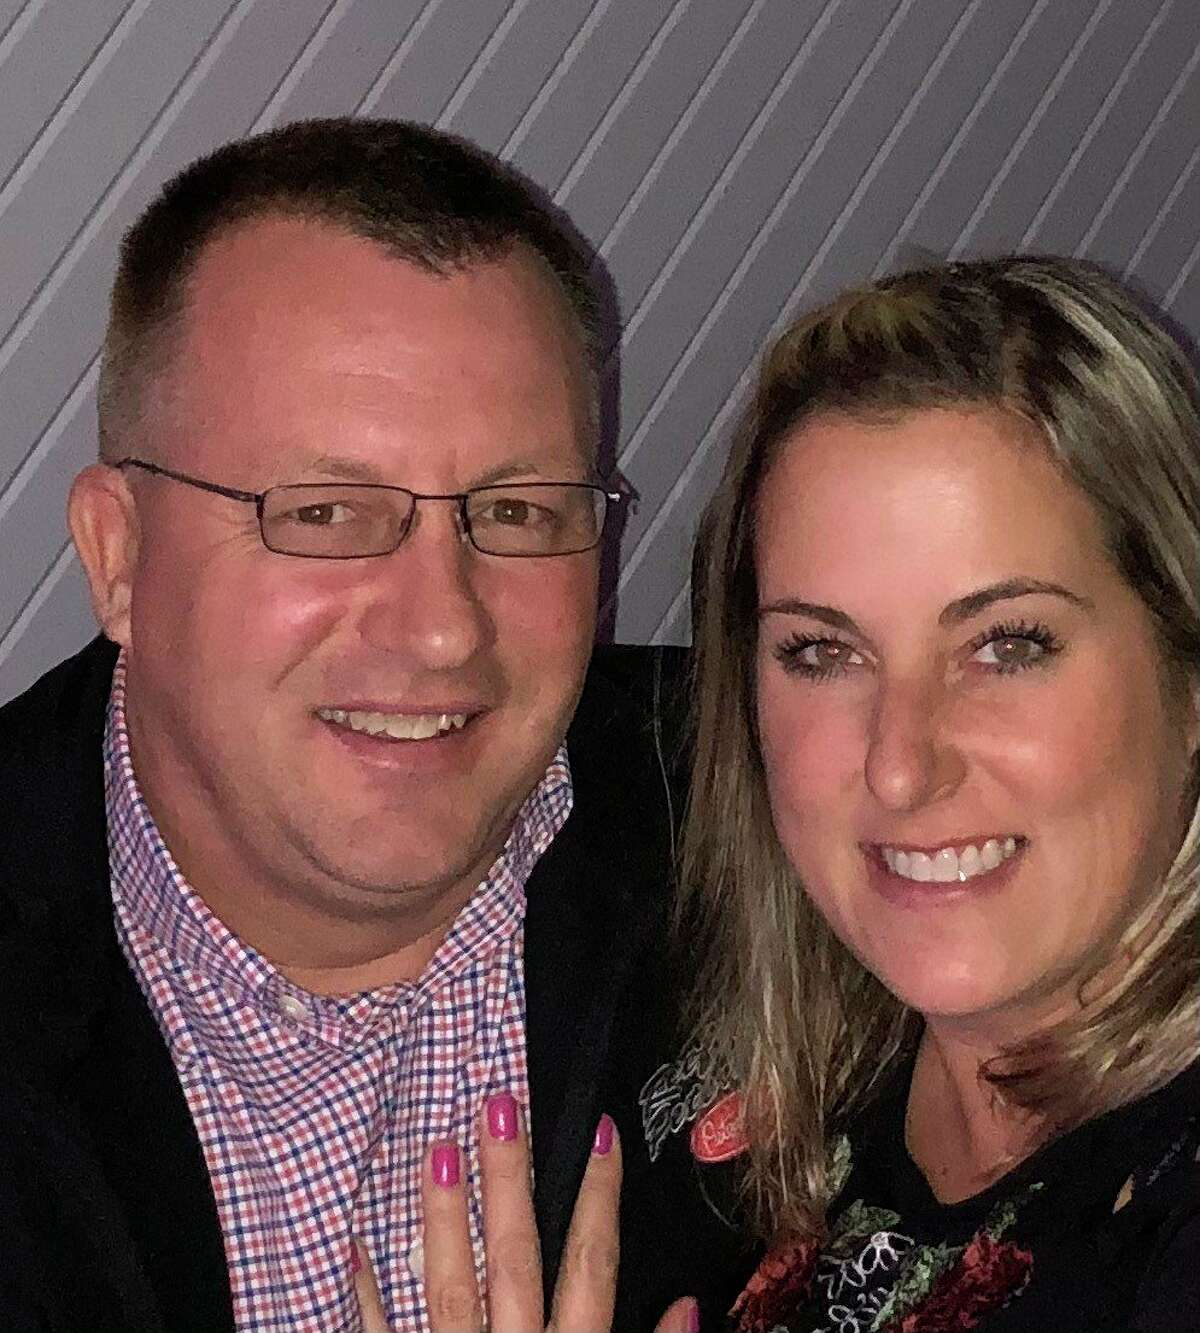 Melissa Mell with her fiancé Jerald Ignash. The two own two One-Stop Shop locations and Cottage Inn Pizza and are finishing up renovation work with the Bay Port Inn. (Courtesy Photo/Melissa Mell)